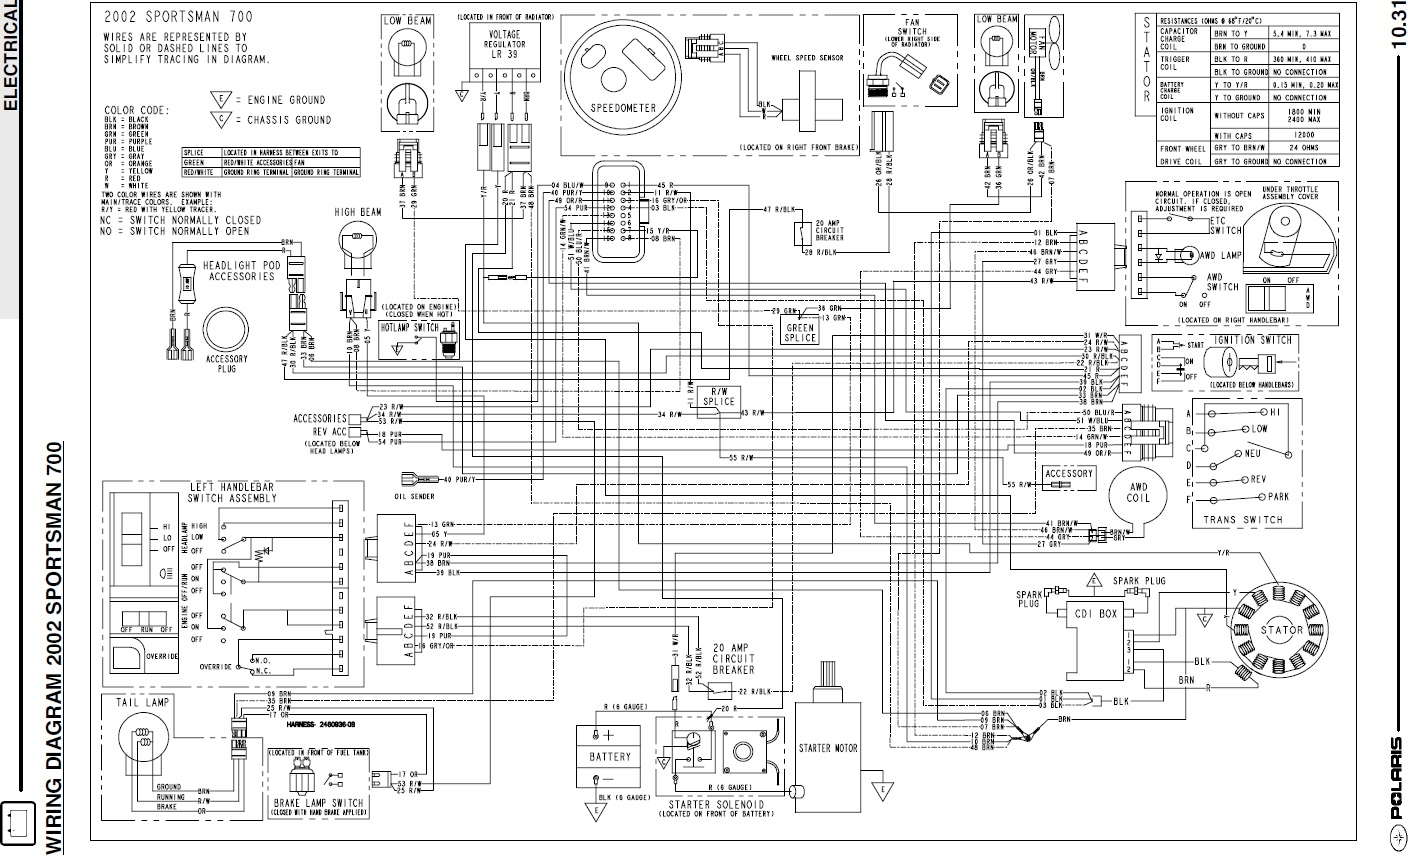 Kawasaki Teryx Wiring Diagram on kawasaki brute force wiring diagram, warn winch 2500 diagram, kawasaki jet ski wiring diagram, kawasaki concours wiring diagram, kawasaki prairie 700 wiring diagram, kawasaki ninja wiring diagram, kawasaki teryx wiring harness, kawasaki kfx400 wiring diagram, kawasaki kfx450r wiring diagram, remote installation services diagram, kawasaki bayou wiring diagram, kawasaki prairie 300 wiring diagram, kawasaki klr wiring diagram, kawasaki vulcan wiring diagram, kawasaki club car wiring diagram, kawasaki prairie 400 wiring diagram, kawasaki side by side wiring diagram, kawasaki engine wiring diagram, kawasaki prairie 650 wiring diagram, kawasaki prairie 360 wiring diagram,